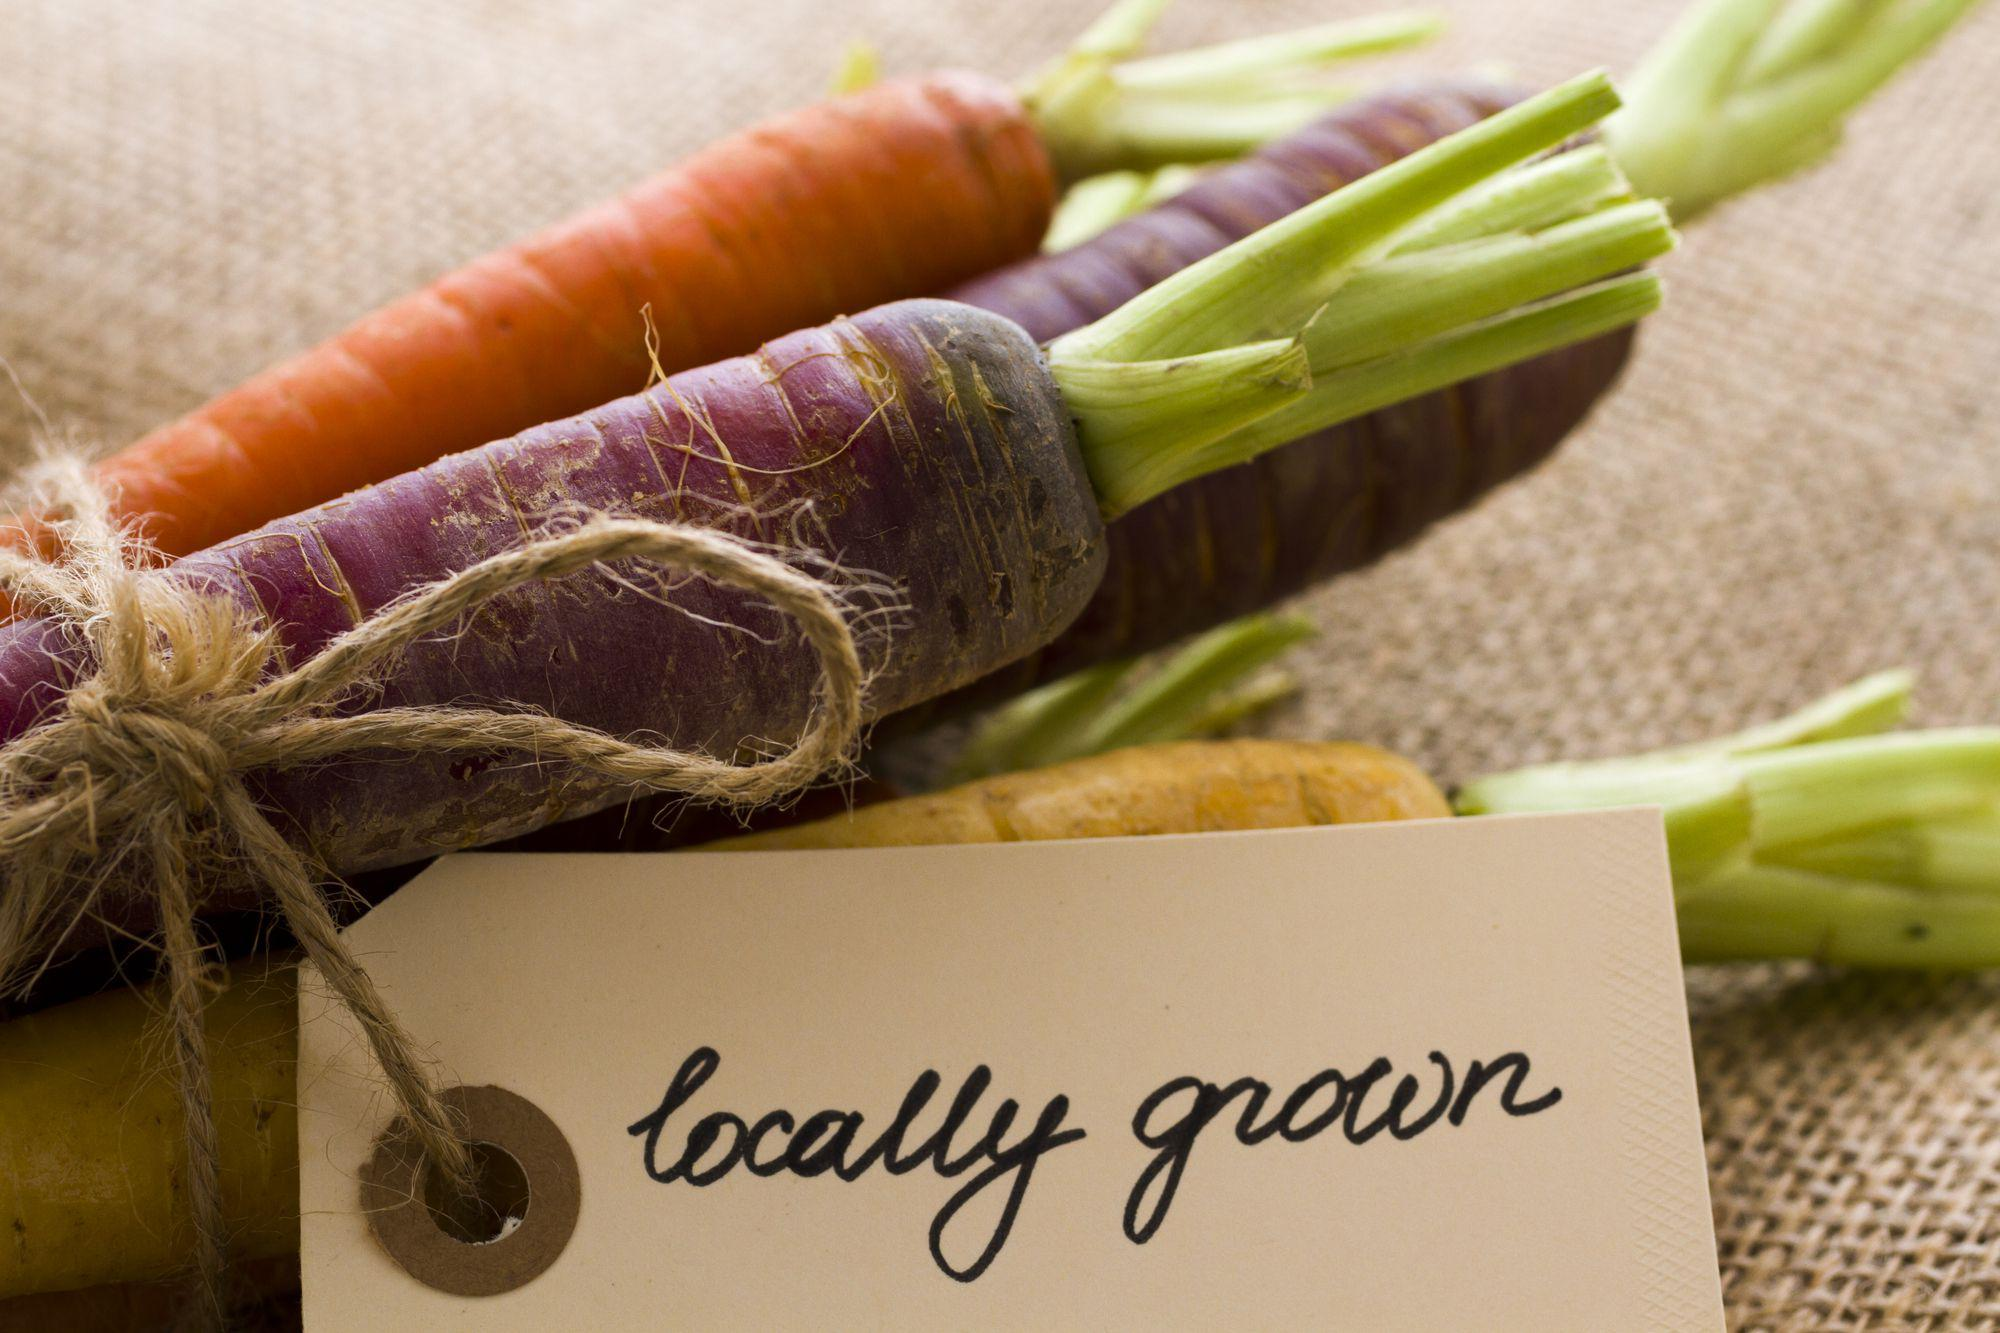 Locally grown, organic carrots might look prettier, but are they any better for the planet?